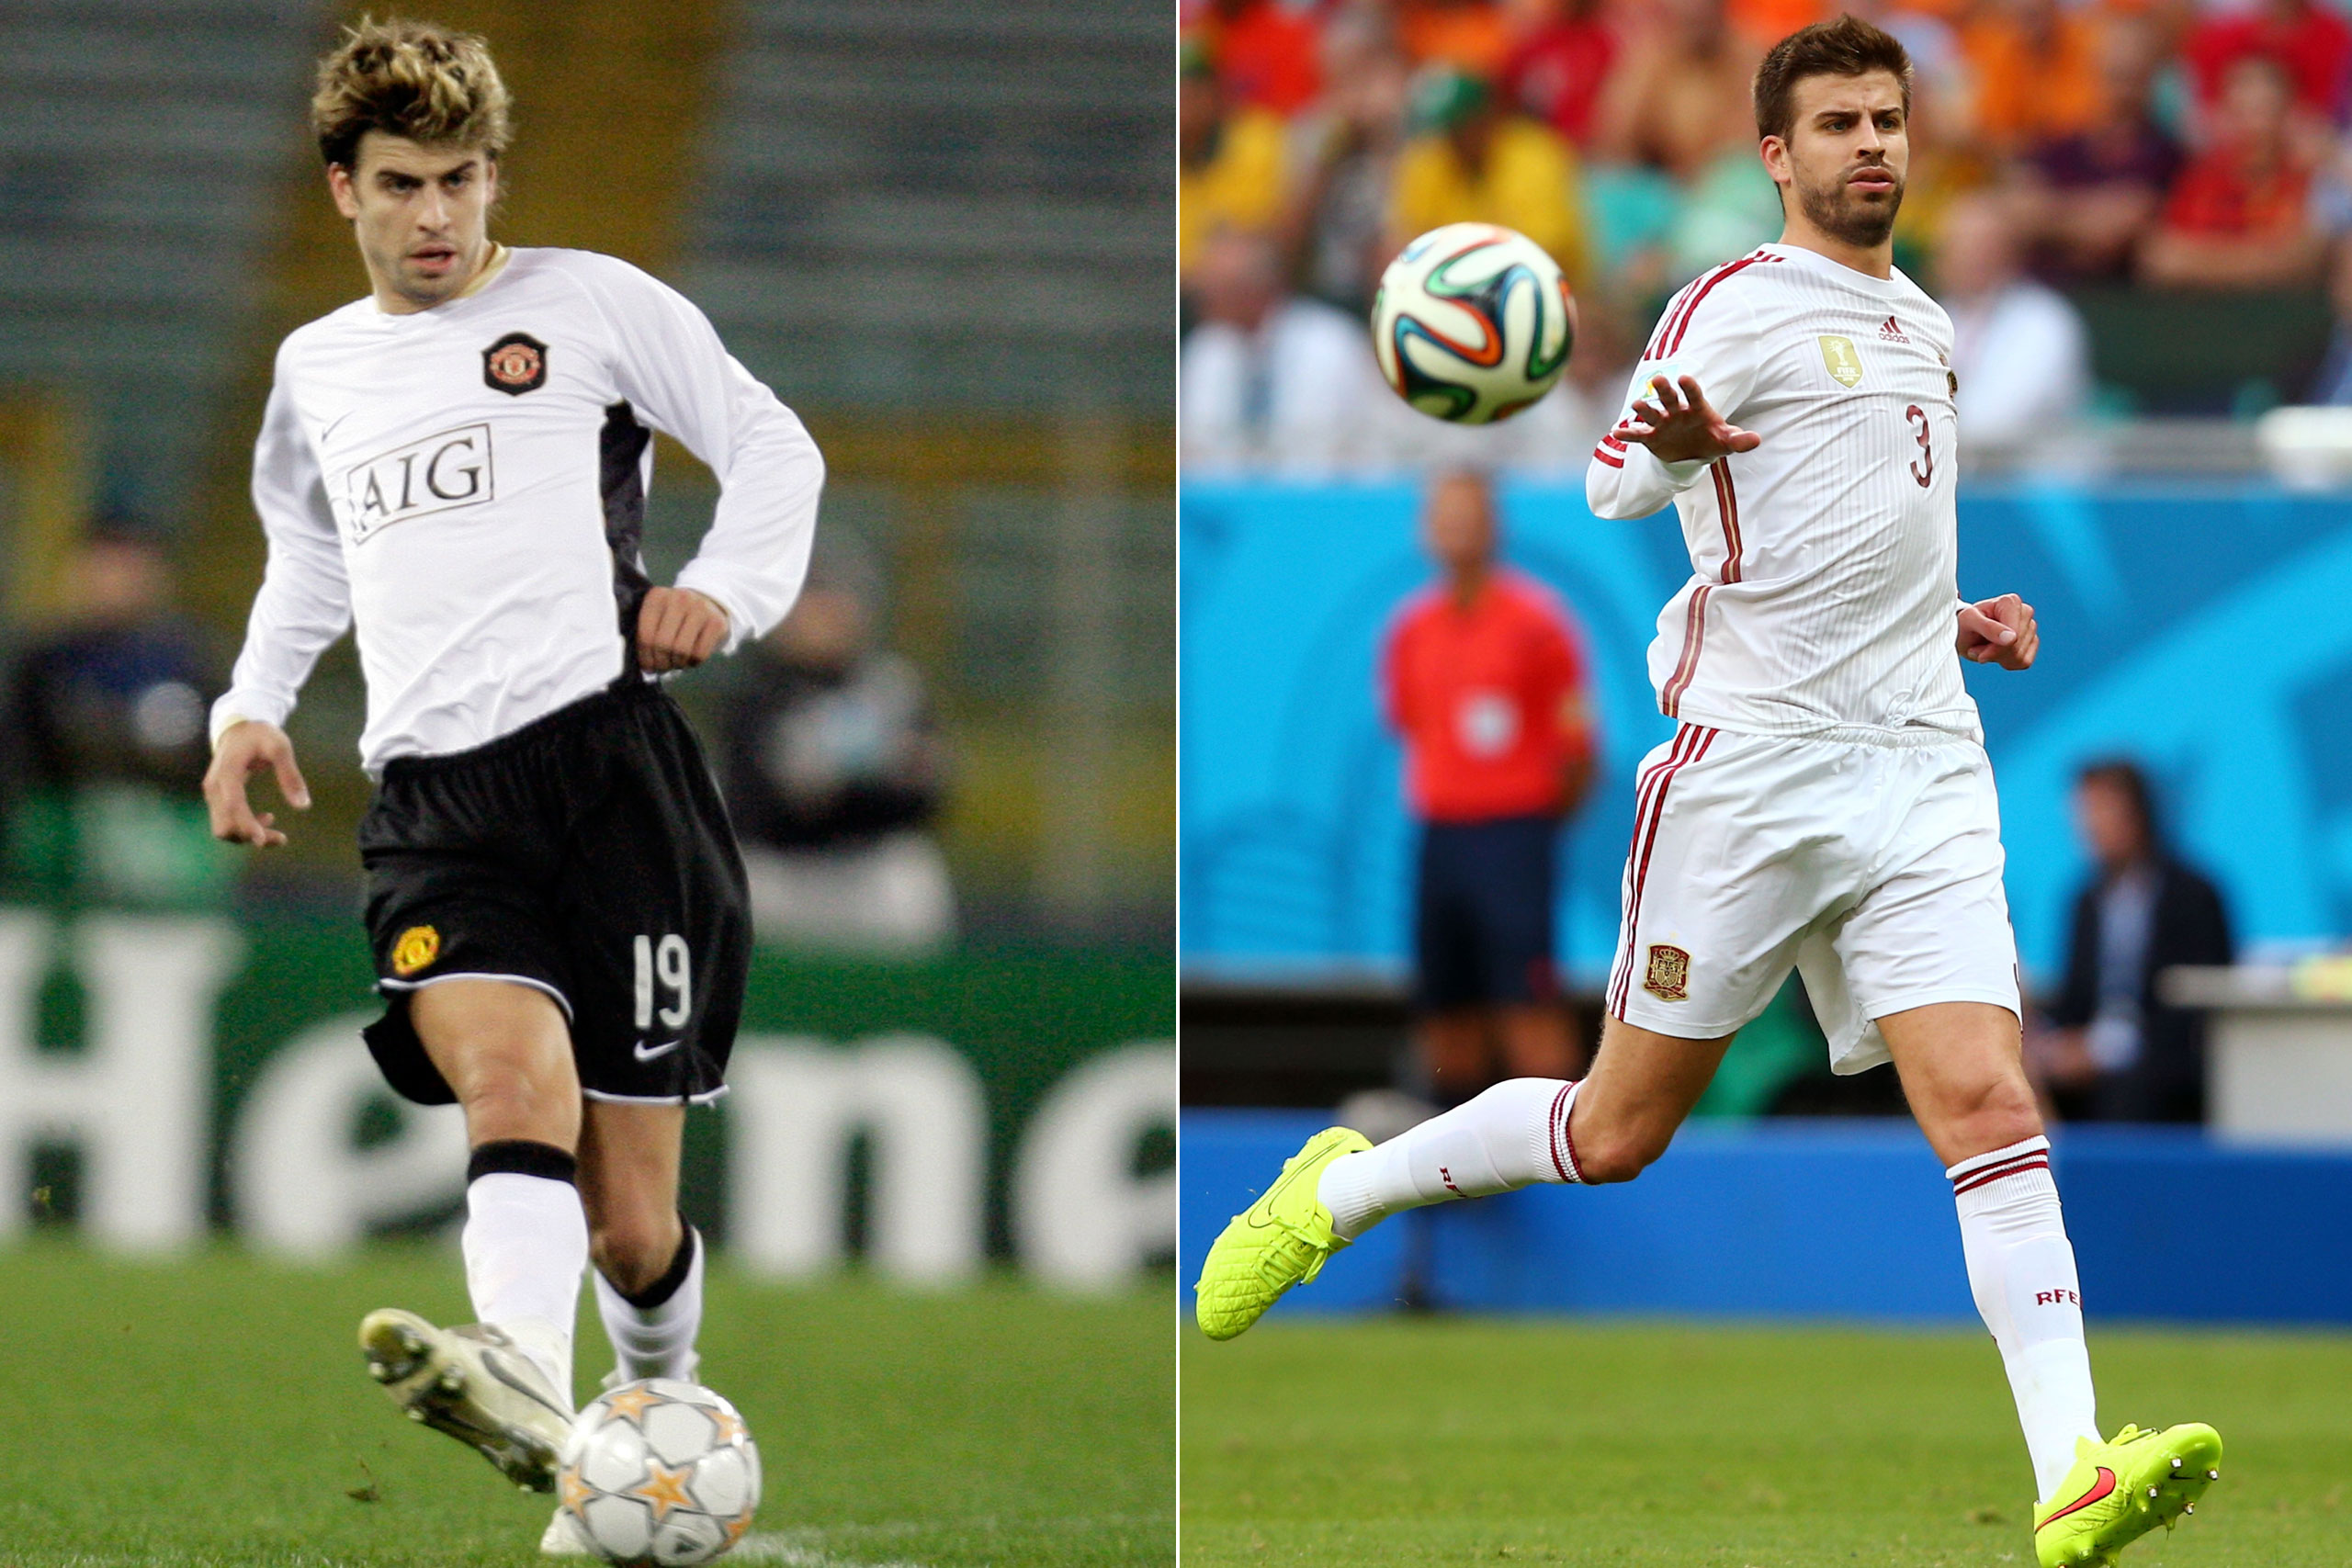 Left: Gerard Pique in 2007; Right: Gerard Pique playing for Spain at the FIFA World Cup in Brazil, 2014.